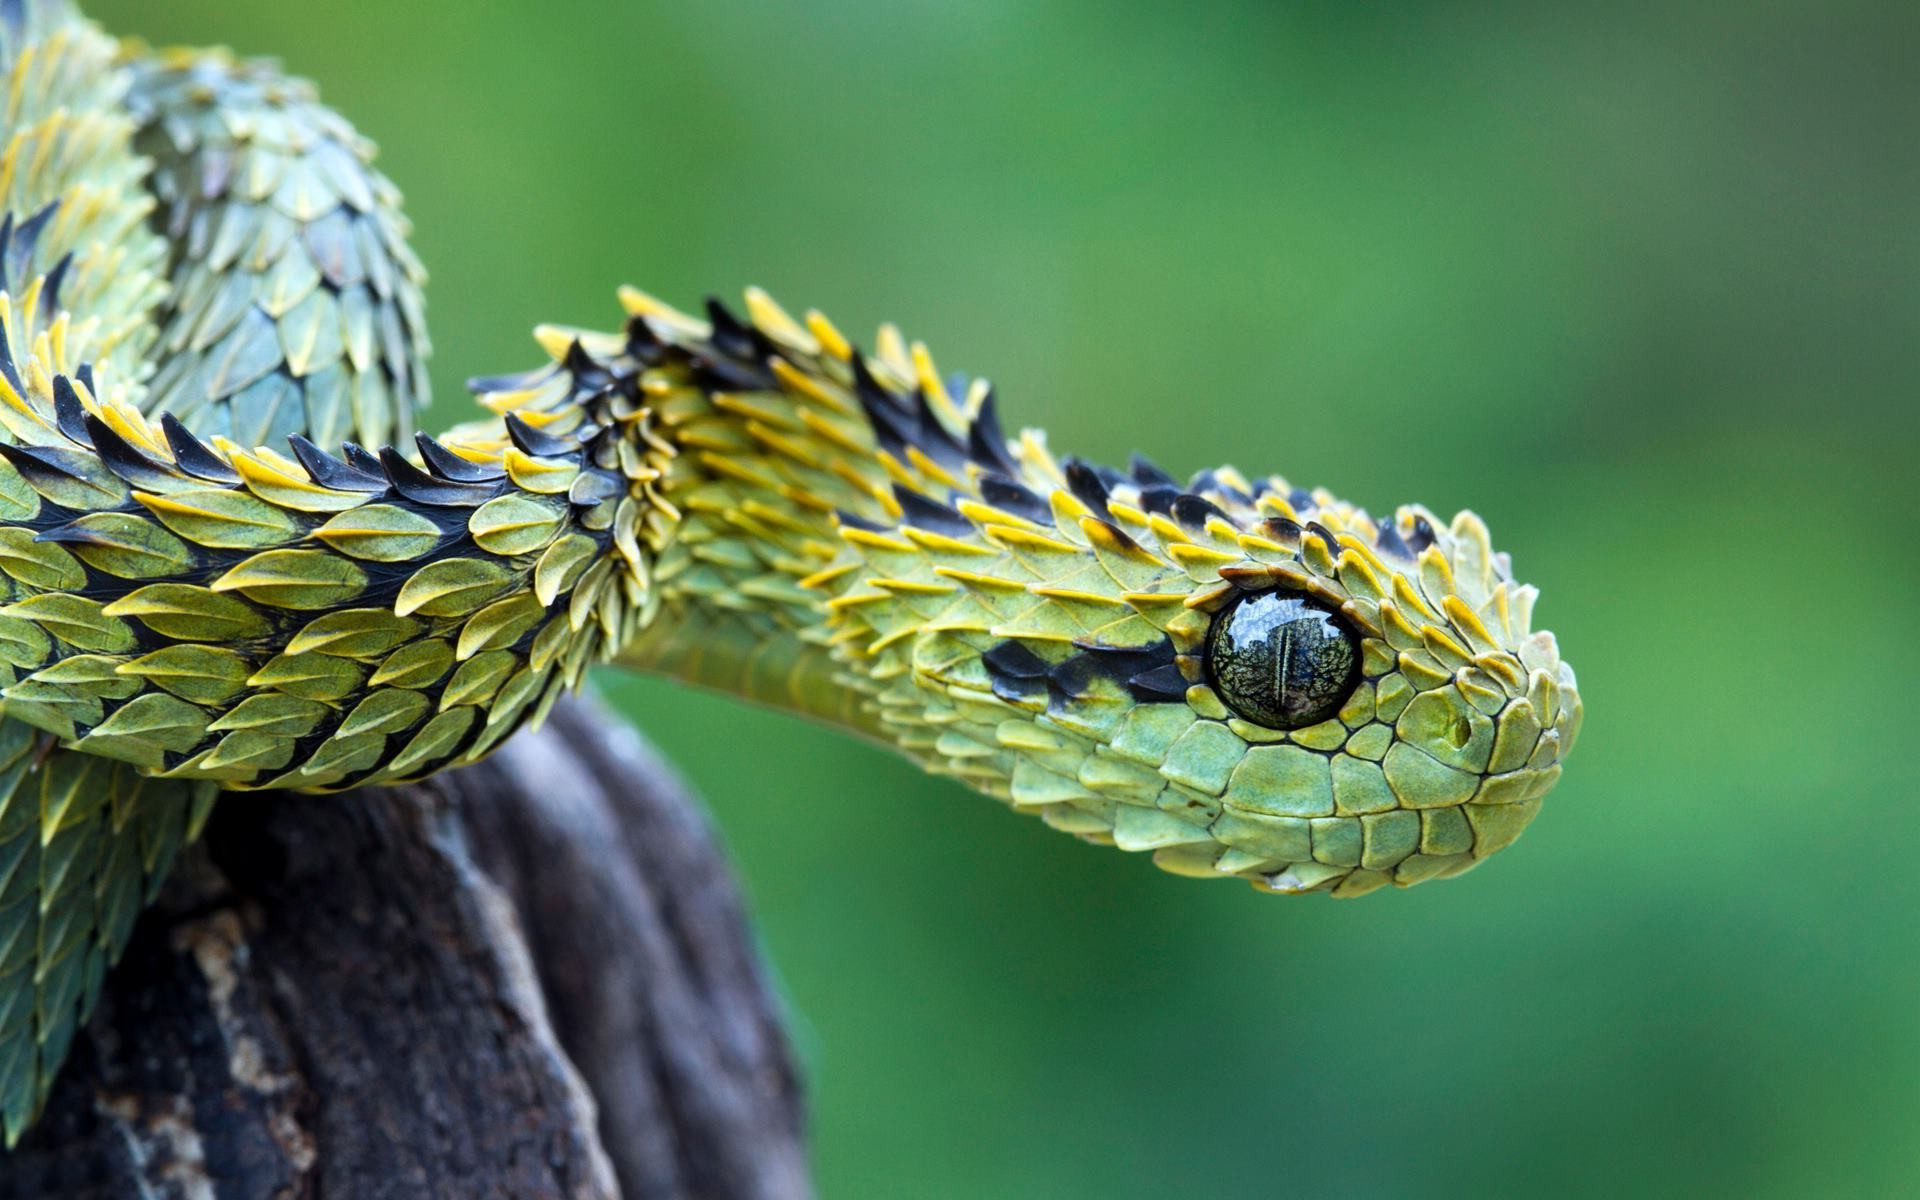 Beautiful Snake Wallpaper